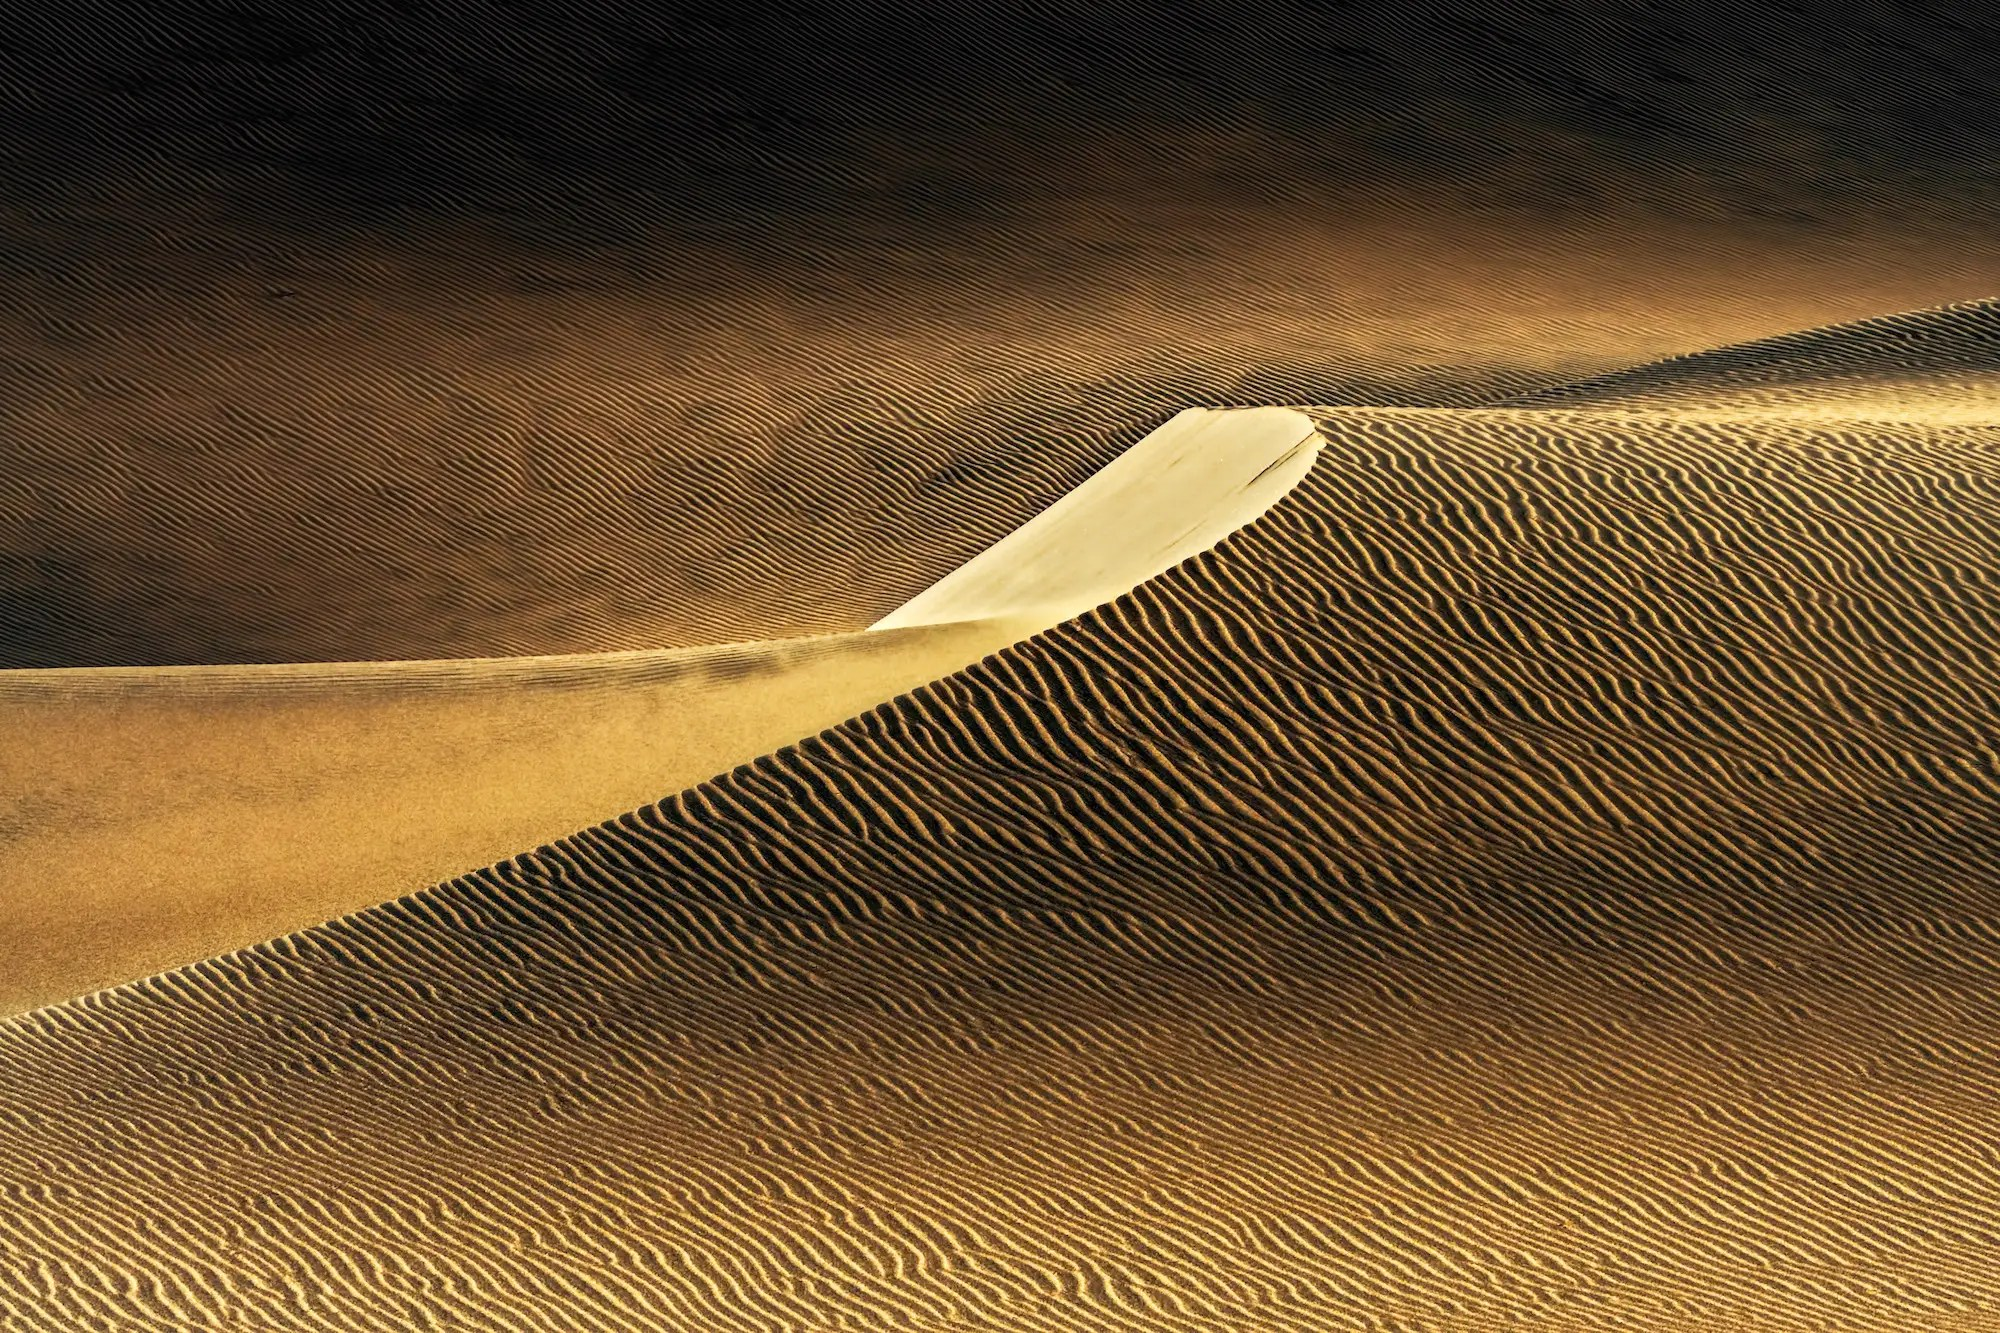 Another other shot from Namibia from Poppe's third-place winning body of work looks like a dream of a desert.